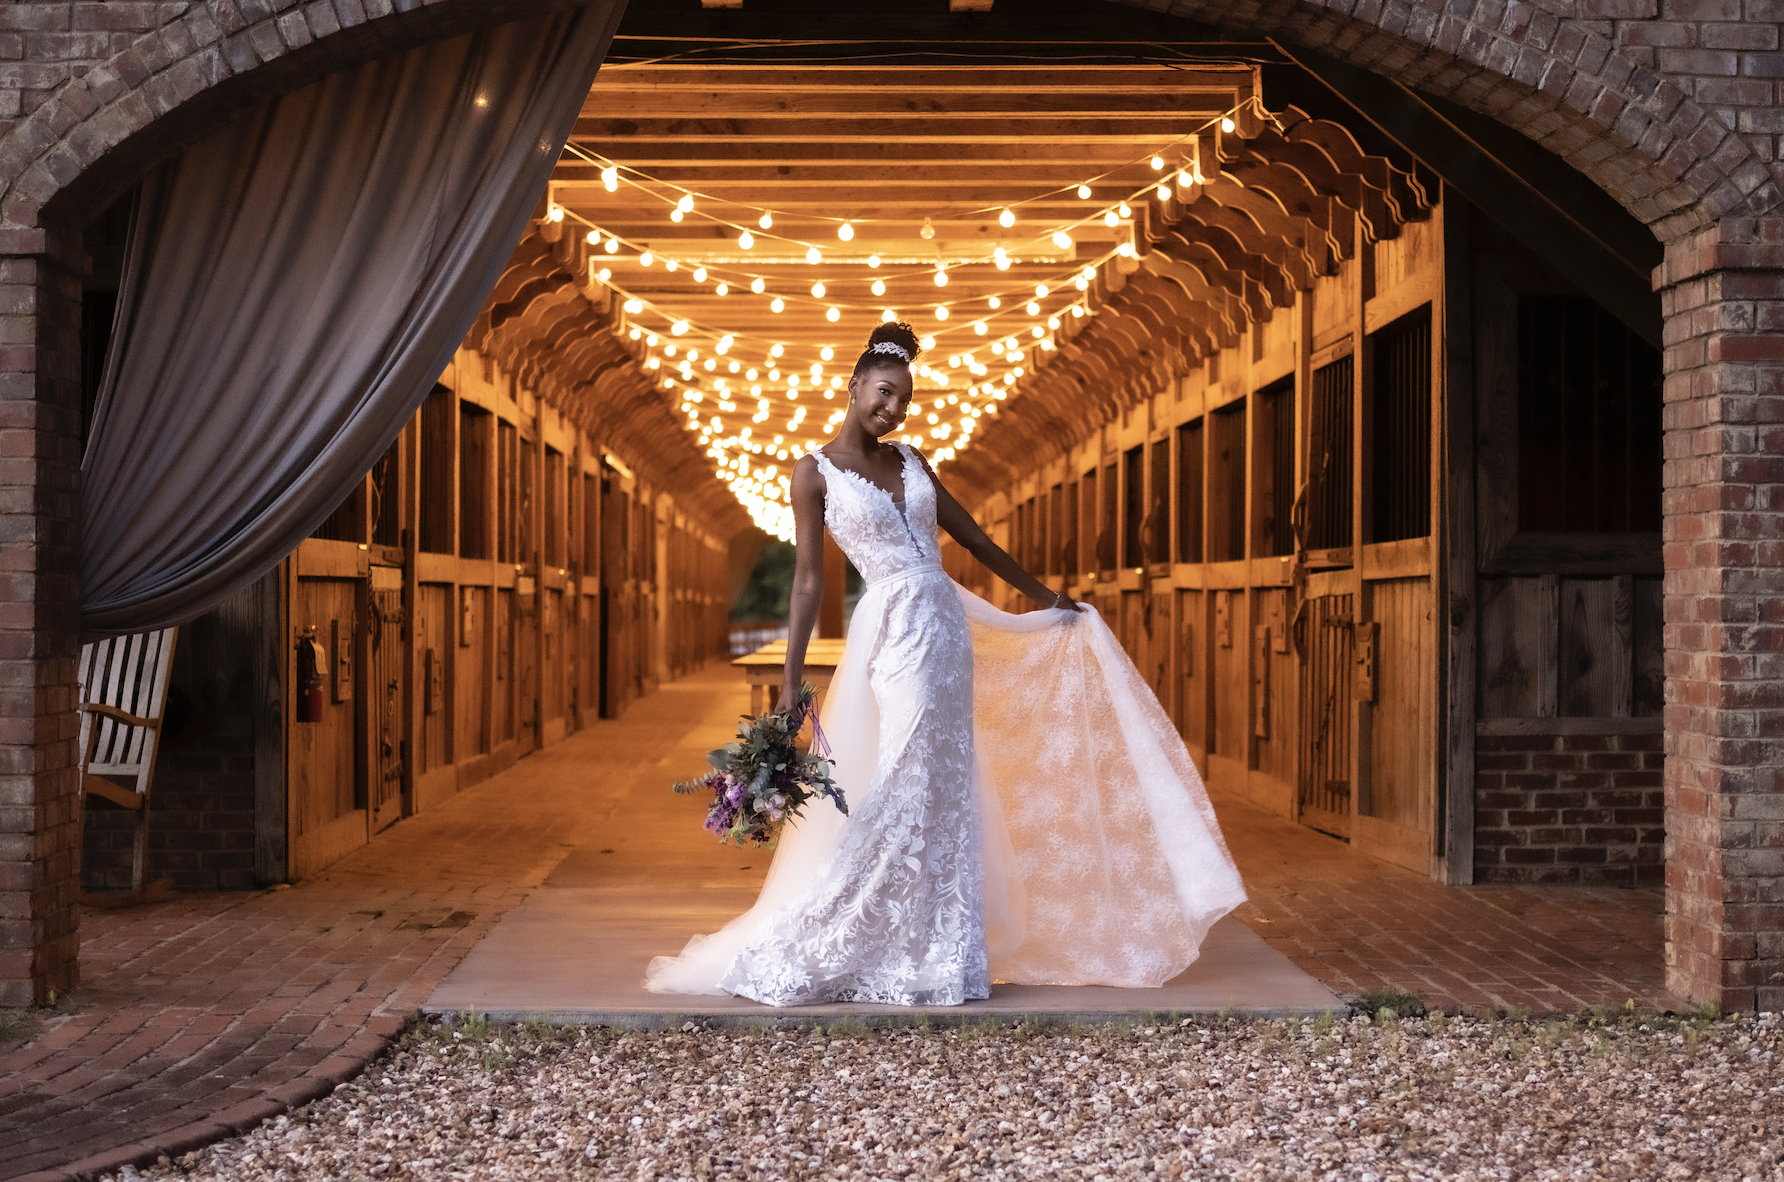 Bride in front of lights in a farm